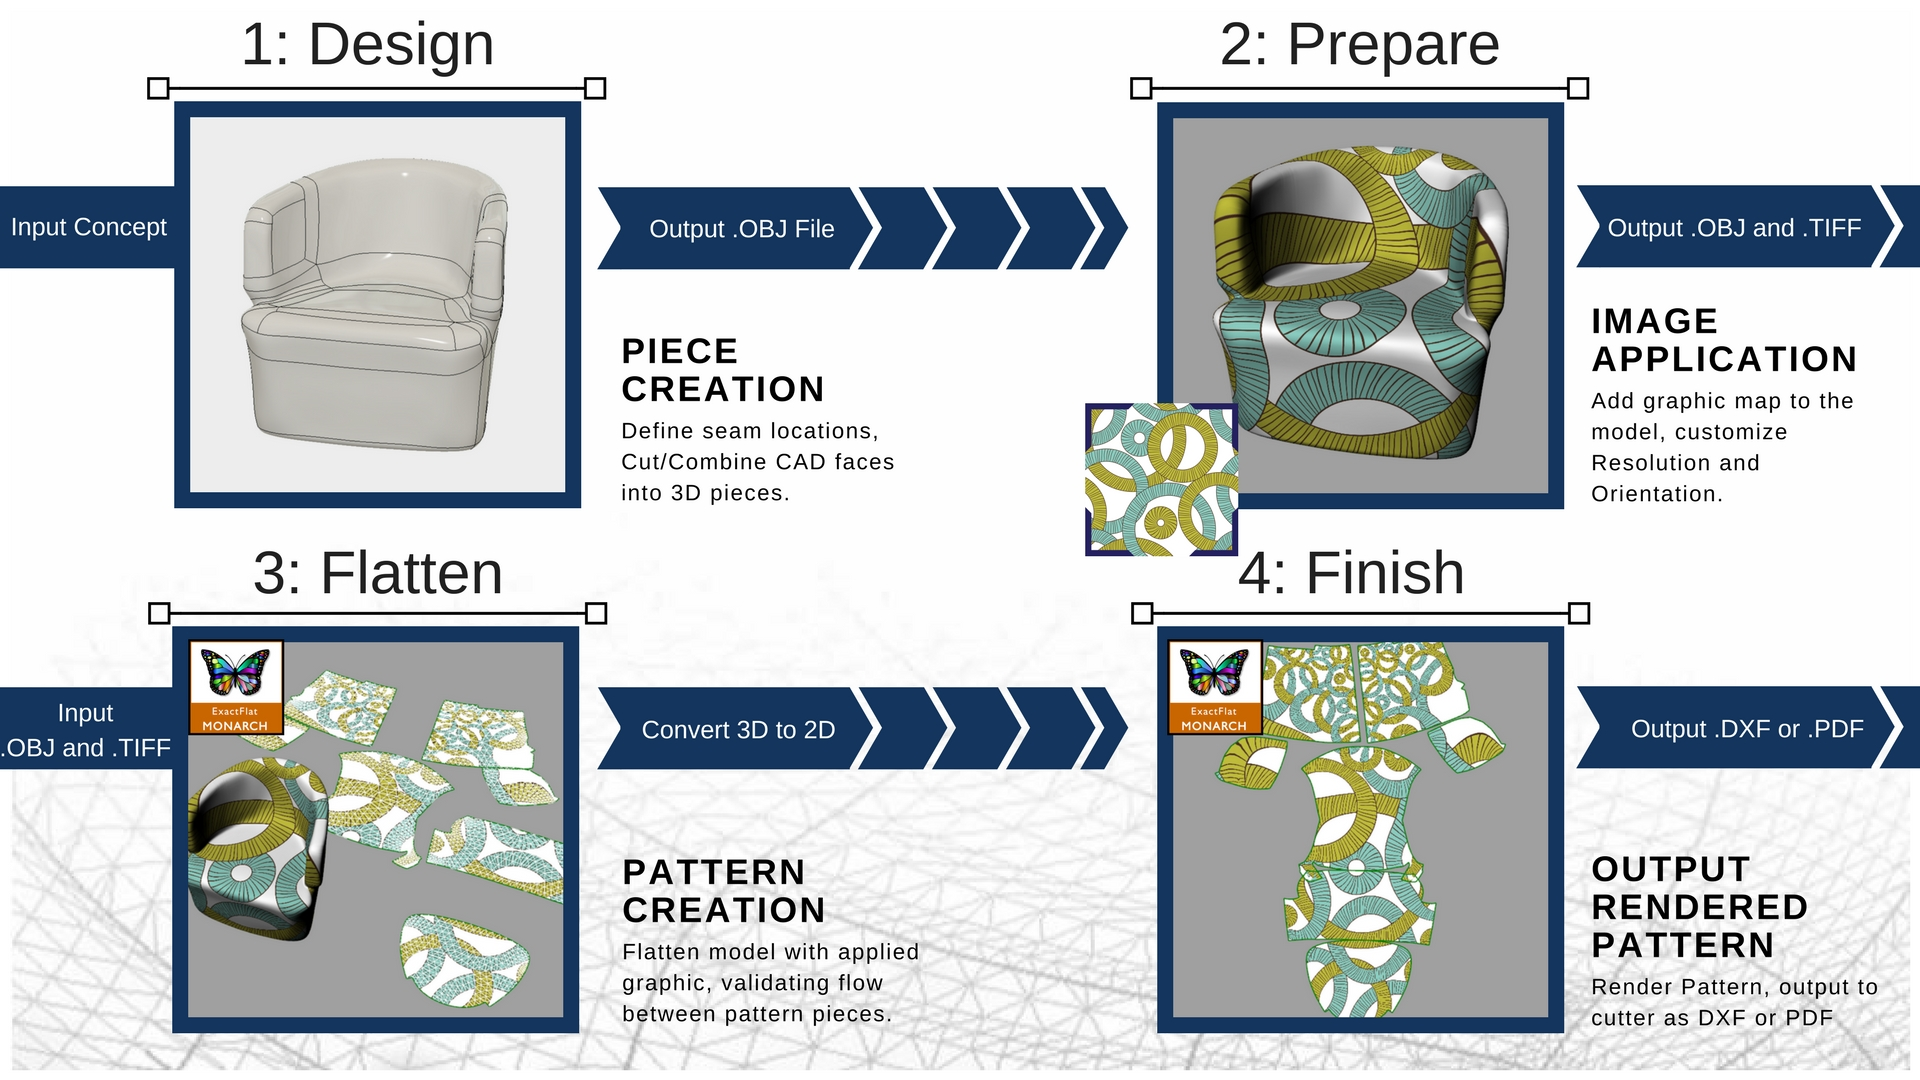 The workflow with 3D digital processes is fast and simple.  And new technologies like leather and fabric microfactory printer/cutters from companies like Mimaki and EFI allow designers to provide a one-of-a-kind look on each piece.